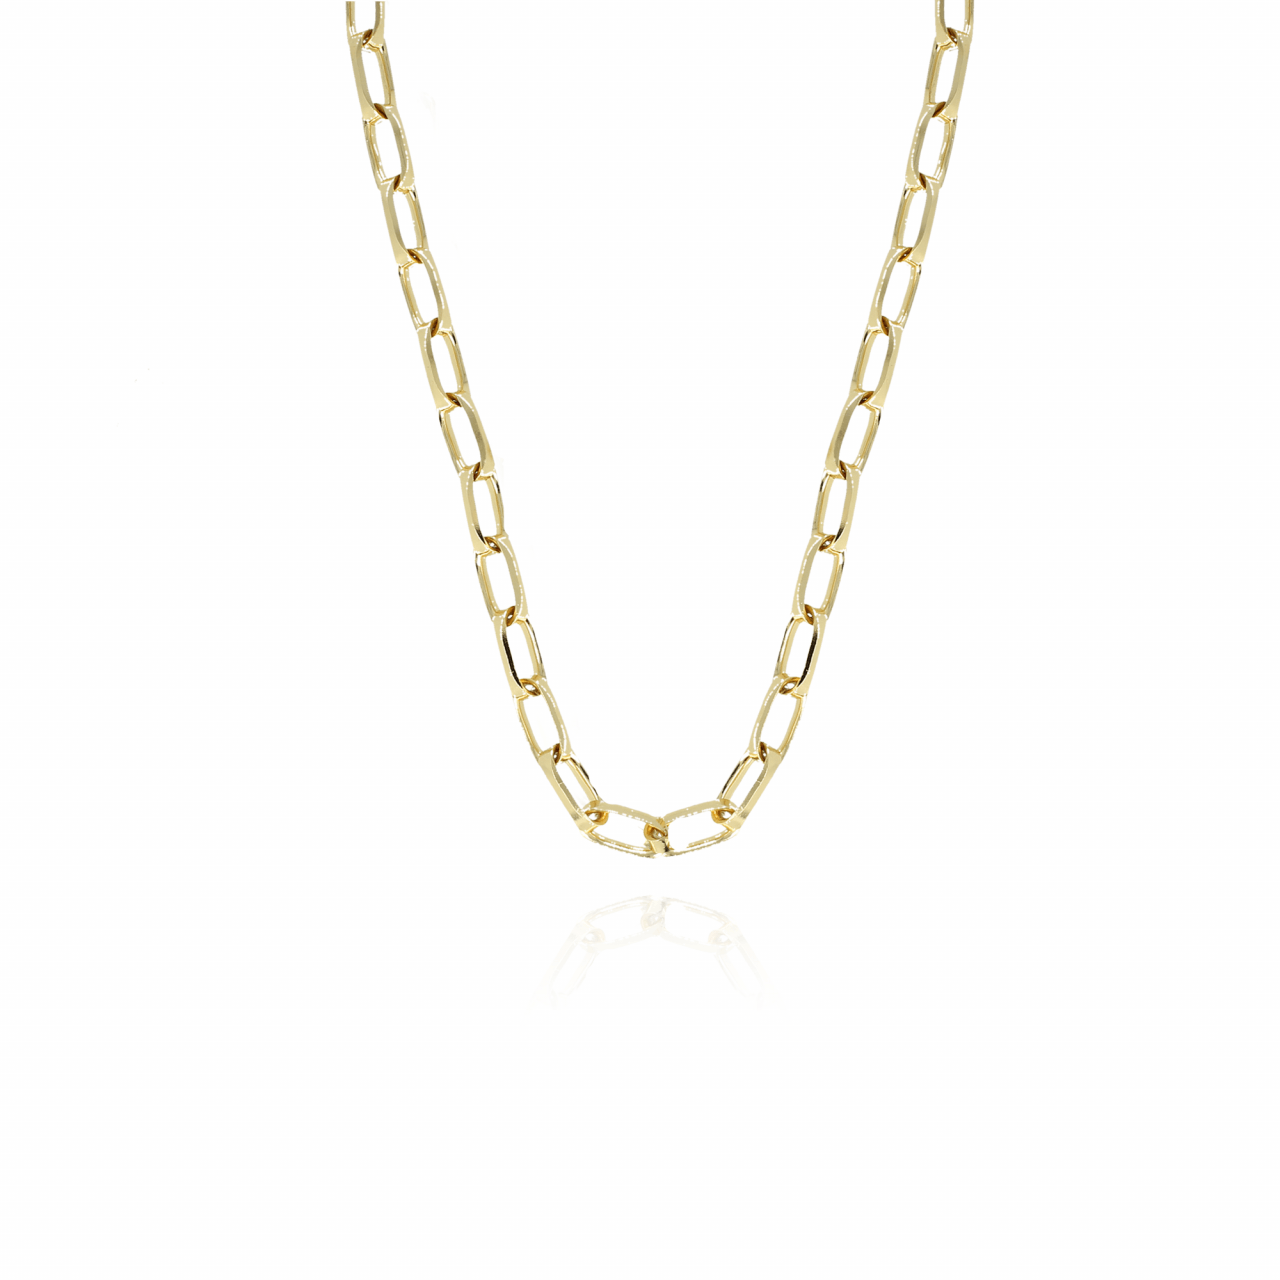 Golden closed forever L chain necklace